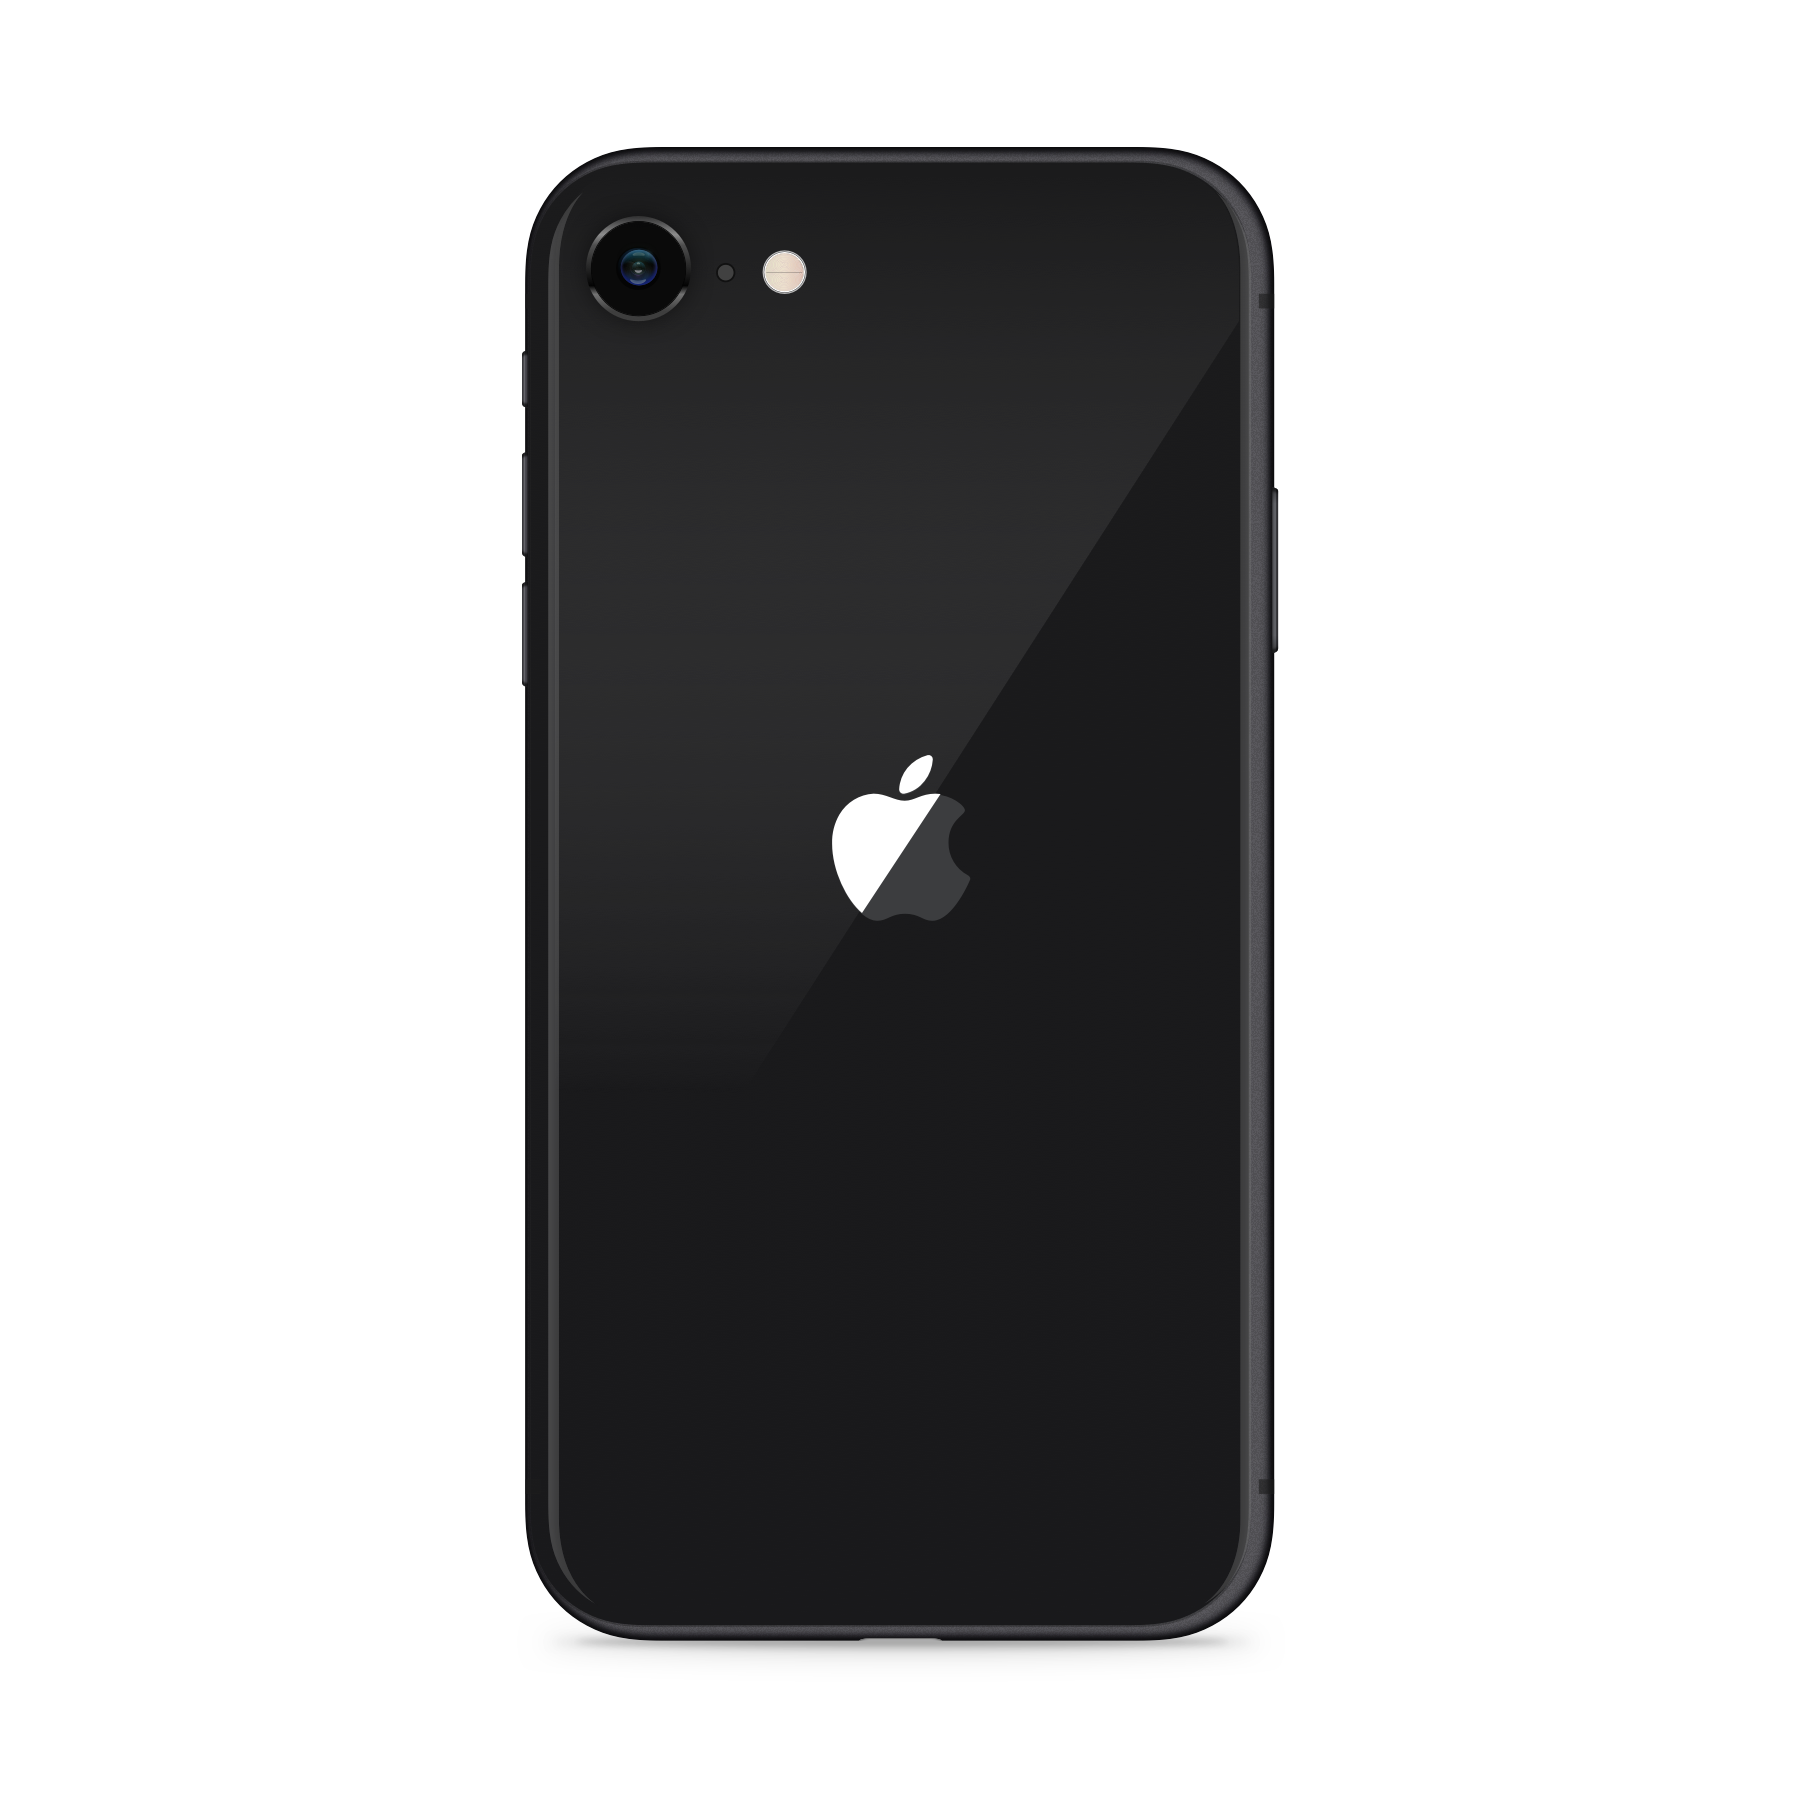 iPhone SE 2020 64GB Black - Back image